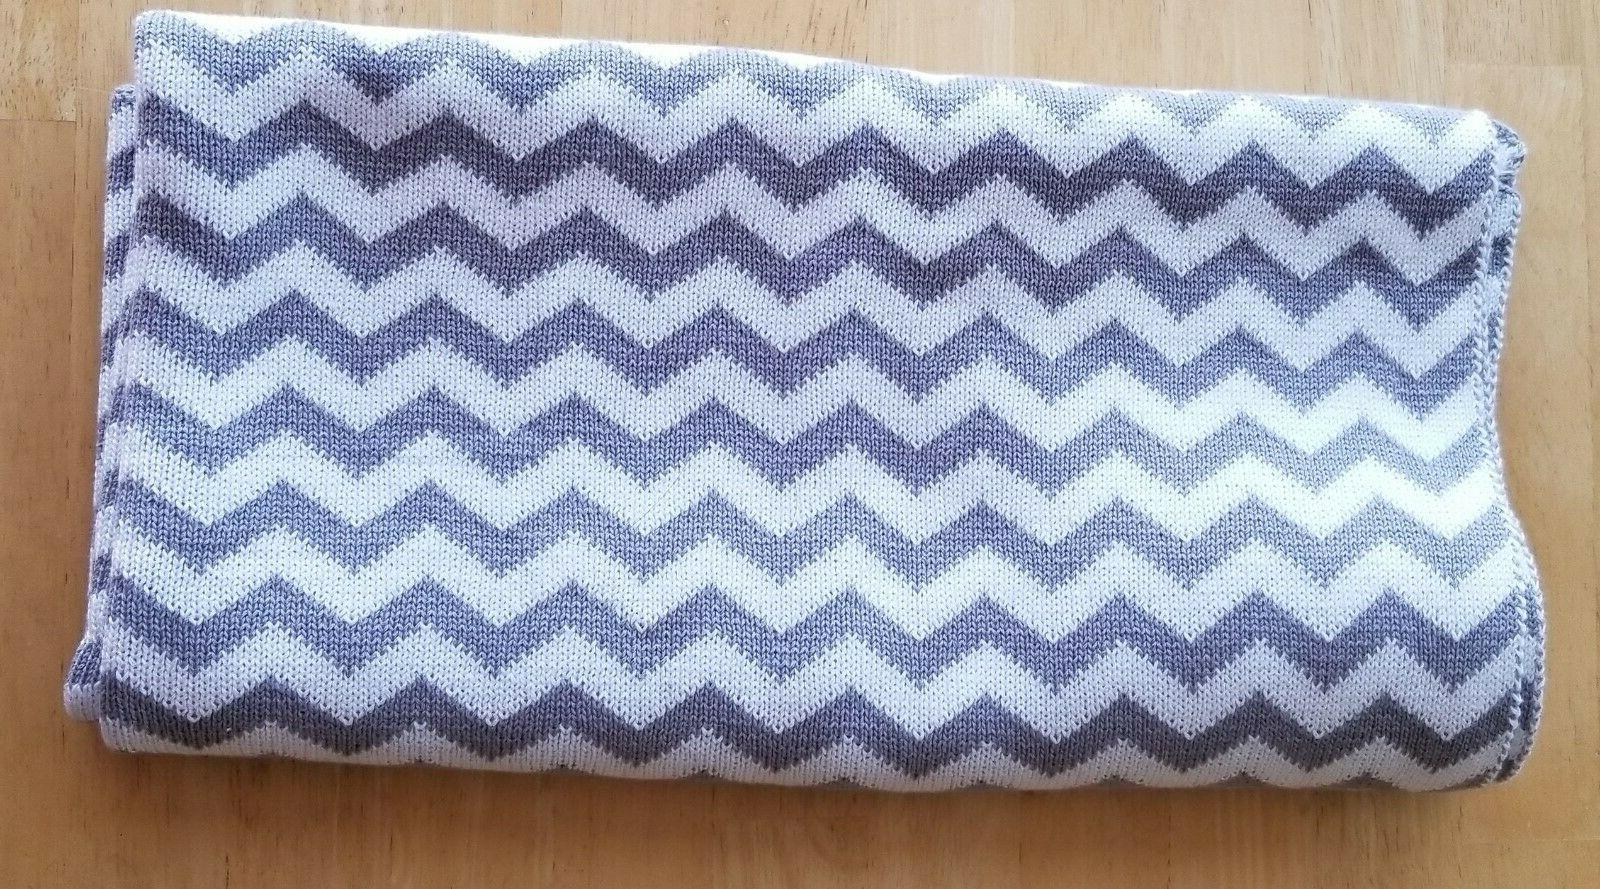 100 percent cotton sweater knit swaddle blanket